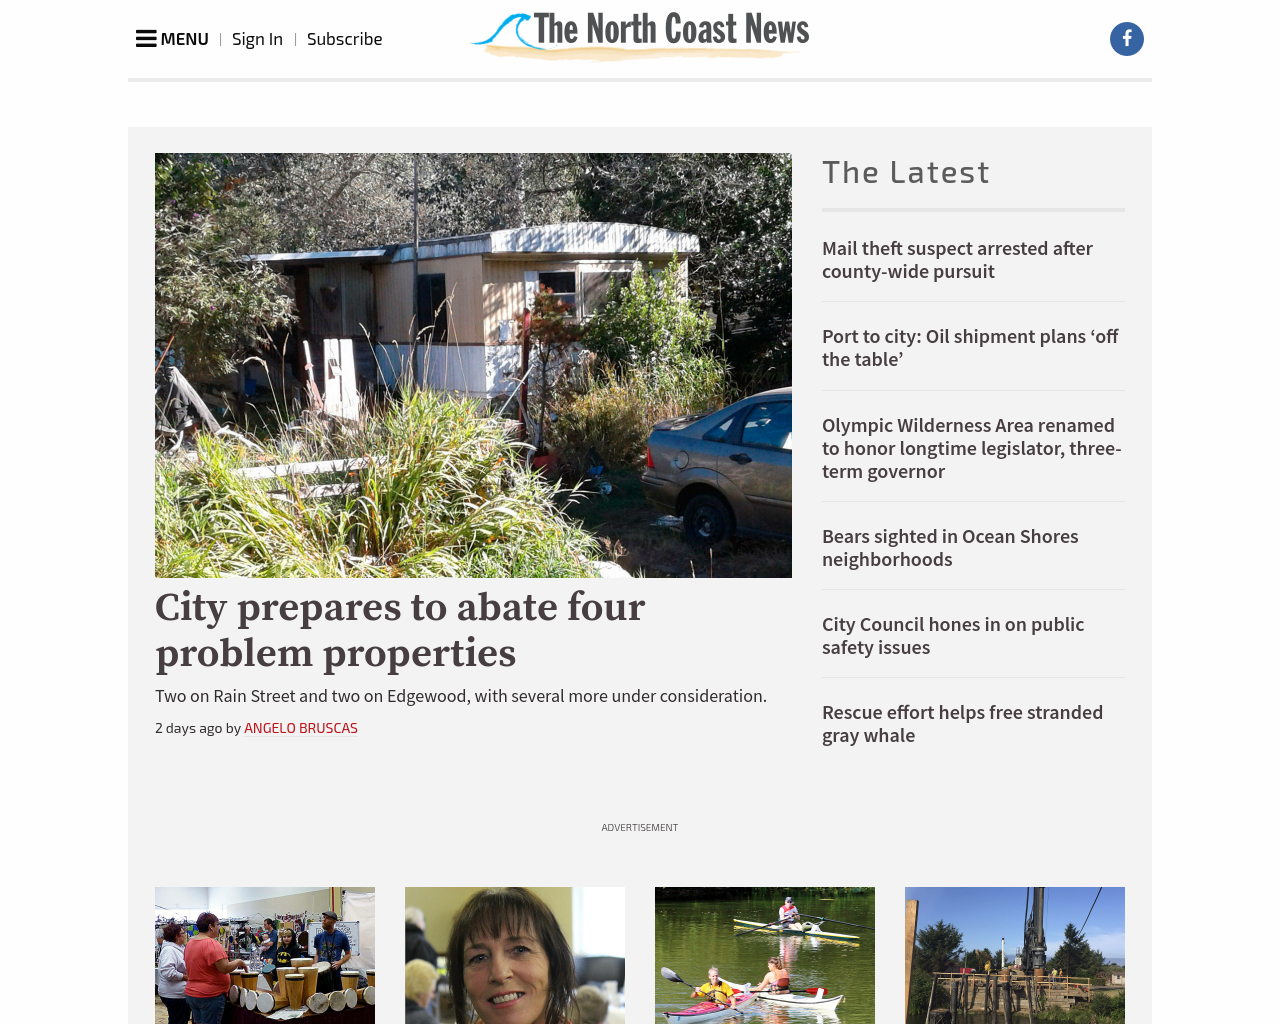 The-North-Coast-News-Advertising-Reviews-Pricing